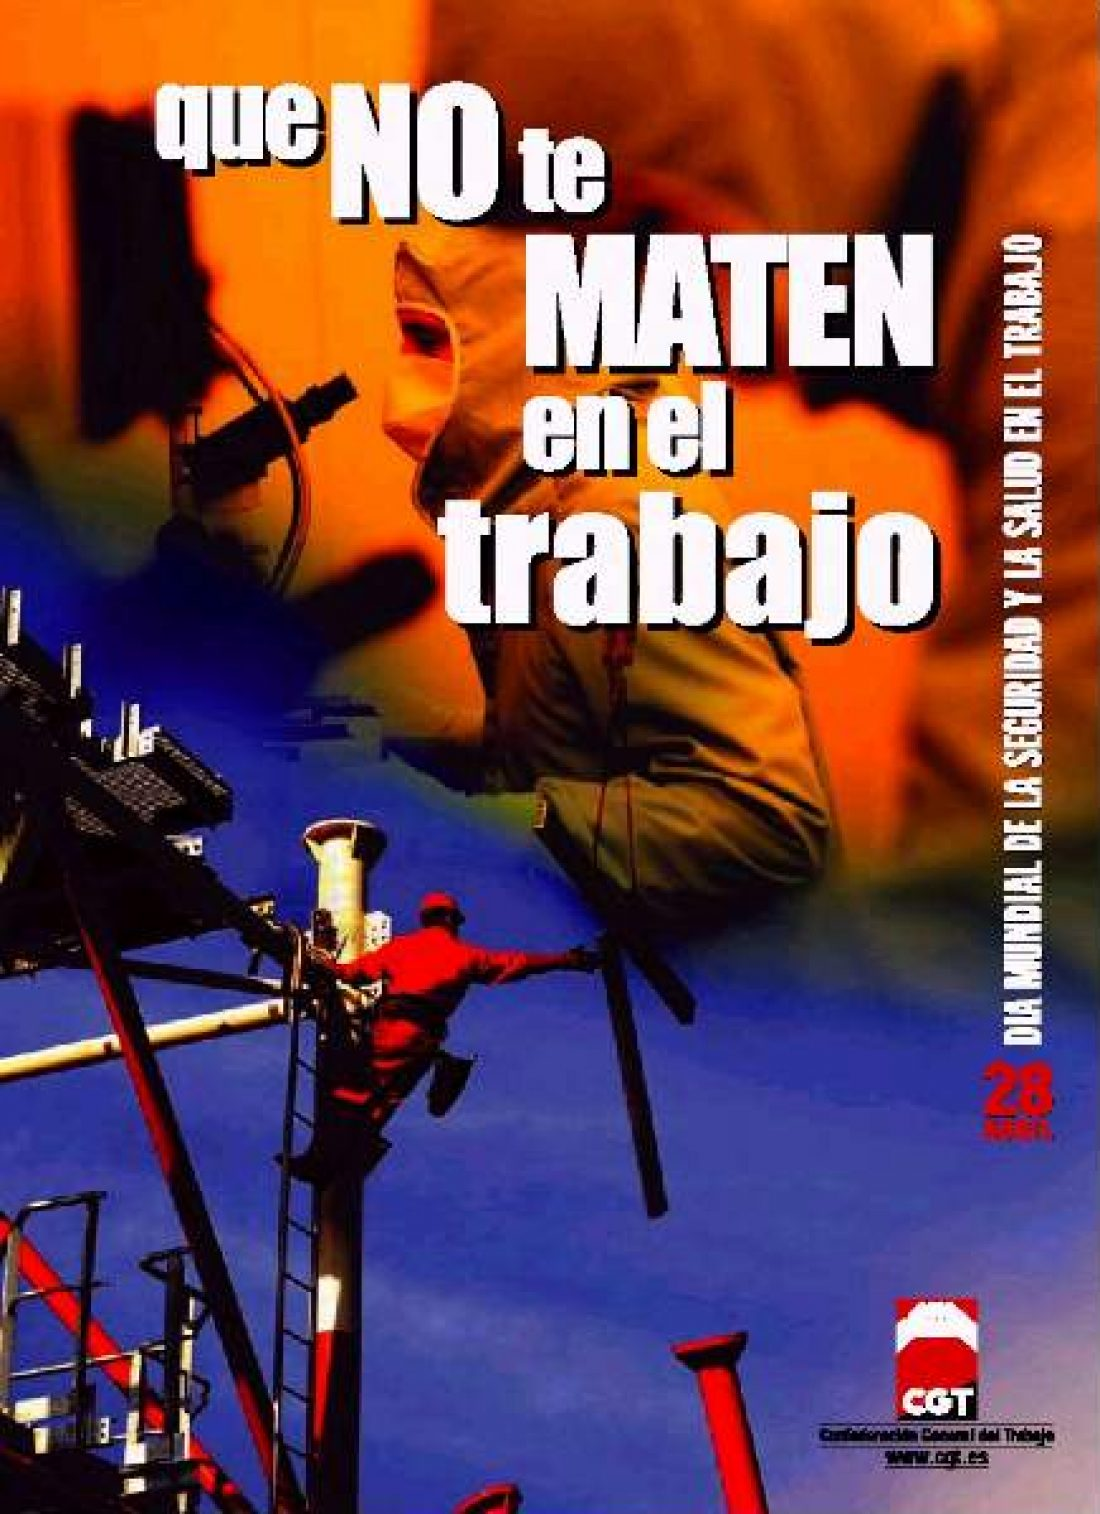 Cartel 28 Abril 2003 CGT